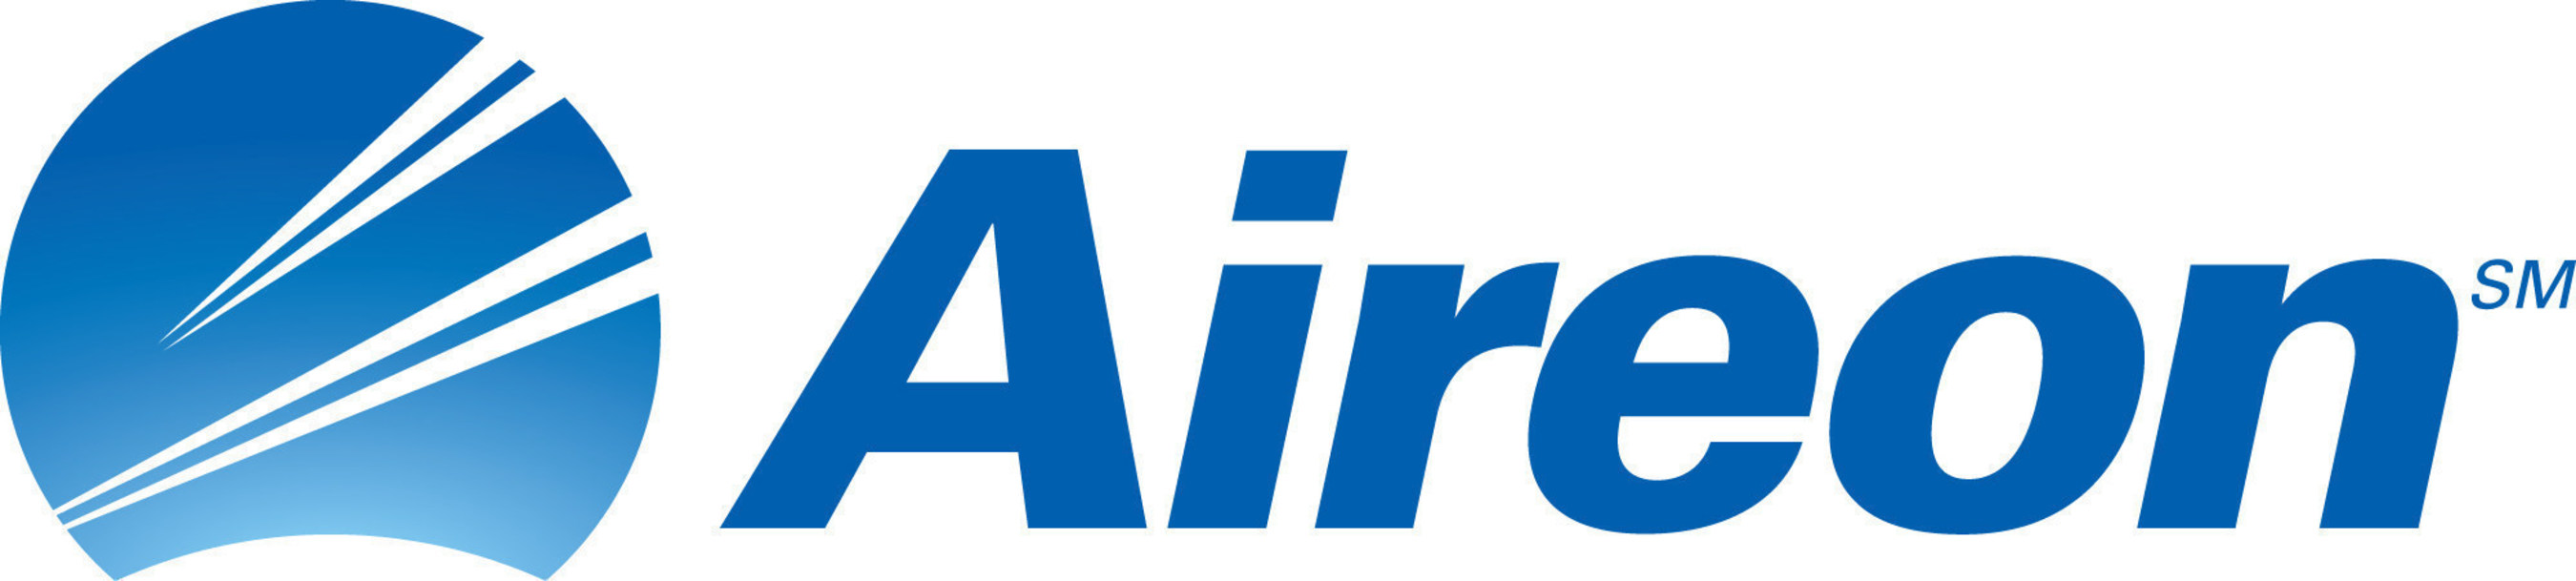 Aireon - MAKING GLOBAL AIR TRAFFIC SURVEILLANCE A POWERFUL REALITY (PRNewsFoto/Aireon LLC)